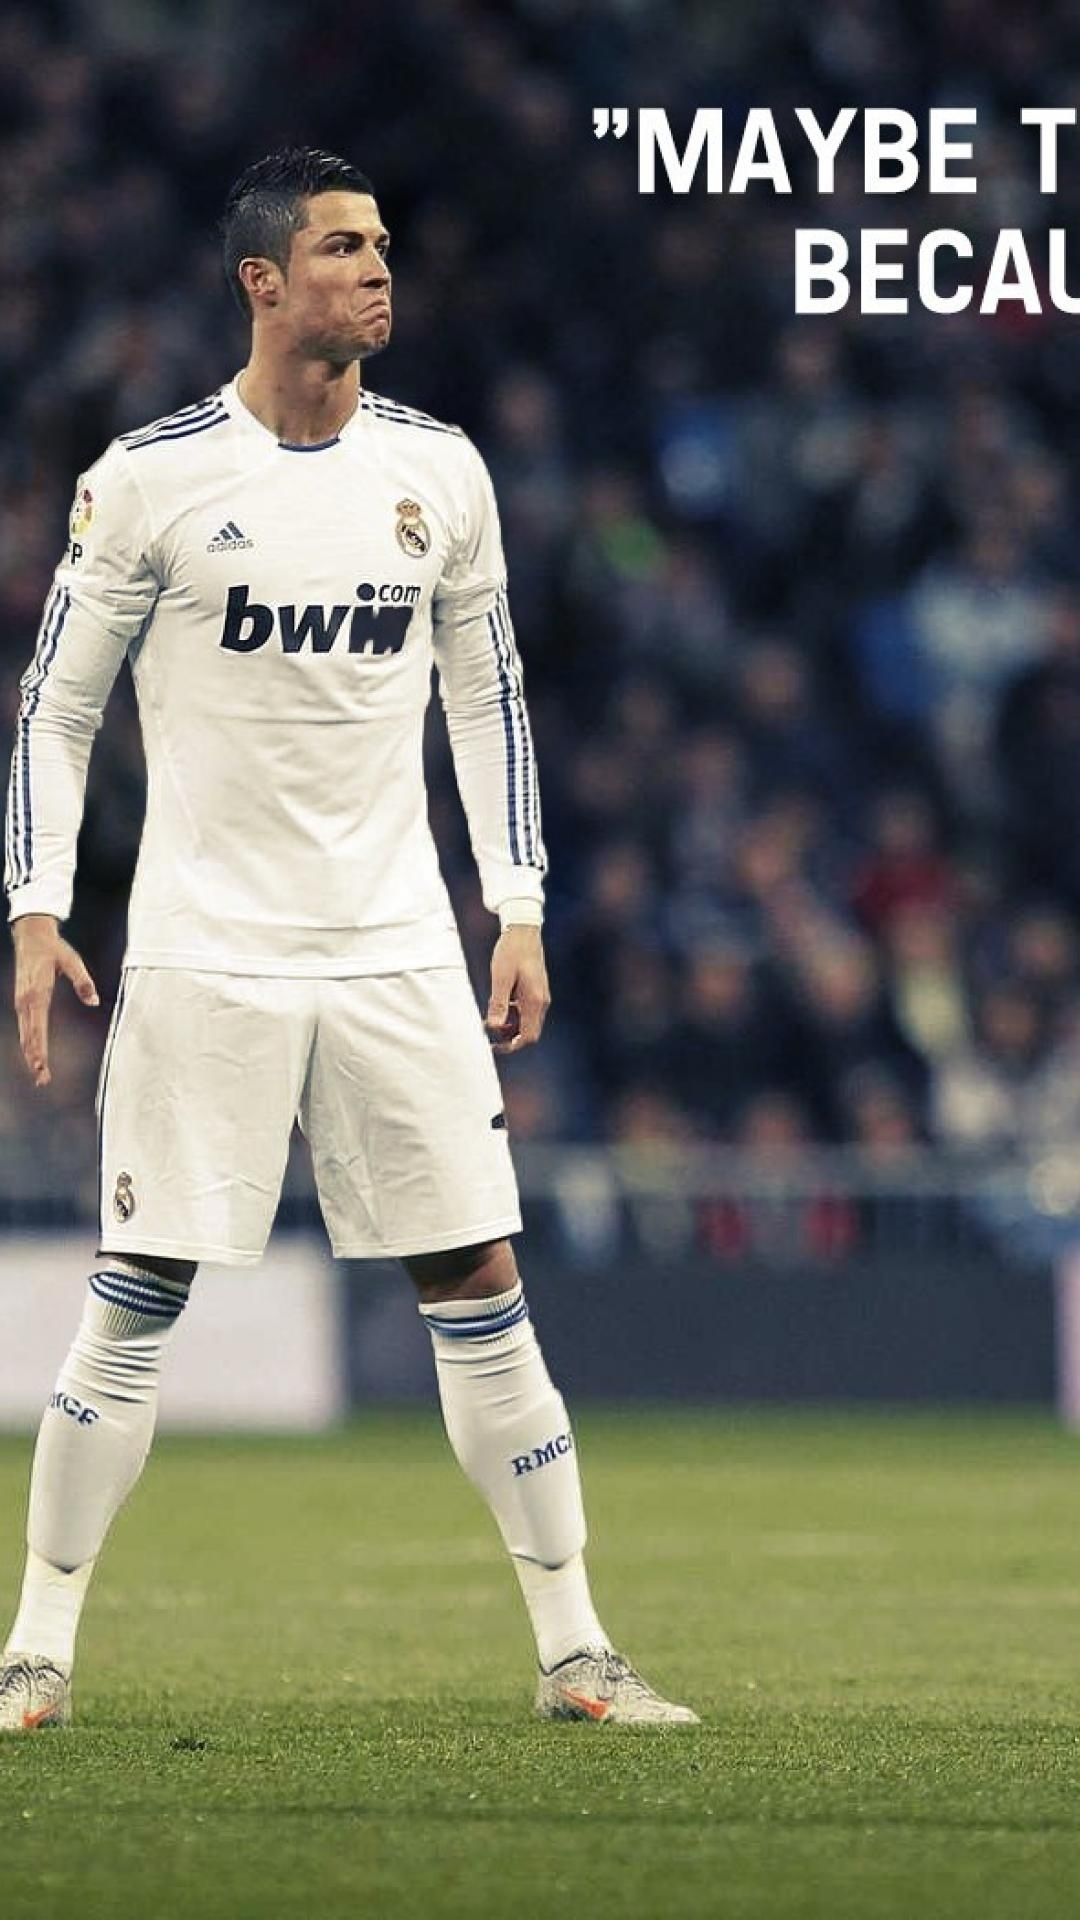 Cristiano Ronaldo Wallpaper For Iphone 6   Download Best Cristiano Ronaldo  Wallpaper For Iphone 6for IPhone Wallpaper InHigh Quality.